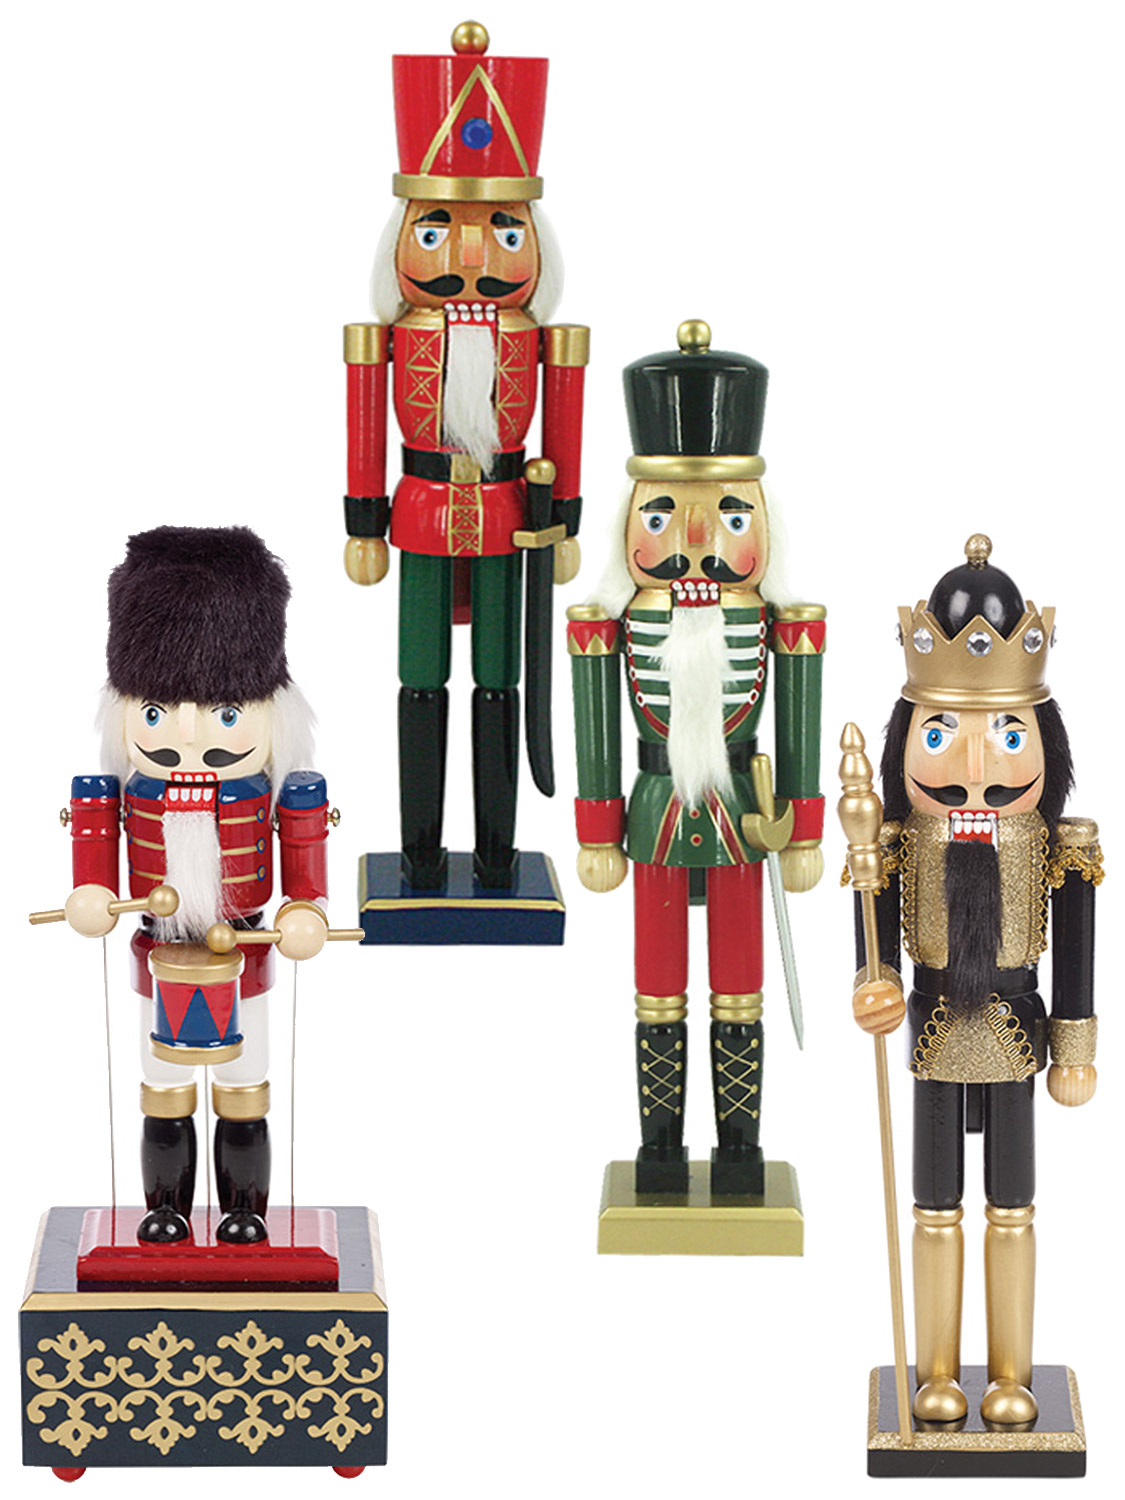 Christmas Traditional Wooden Nutcracker Soldier Festive